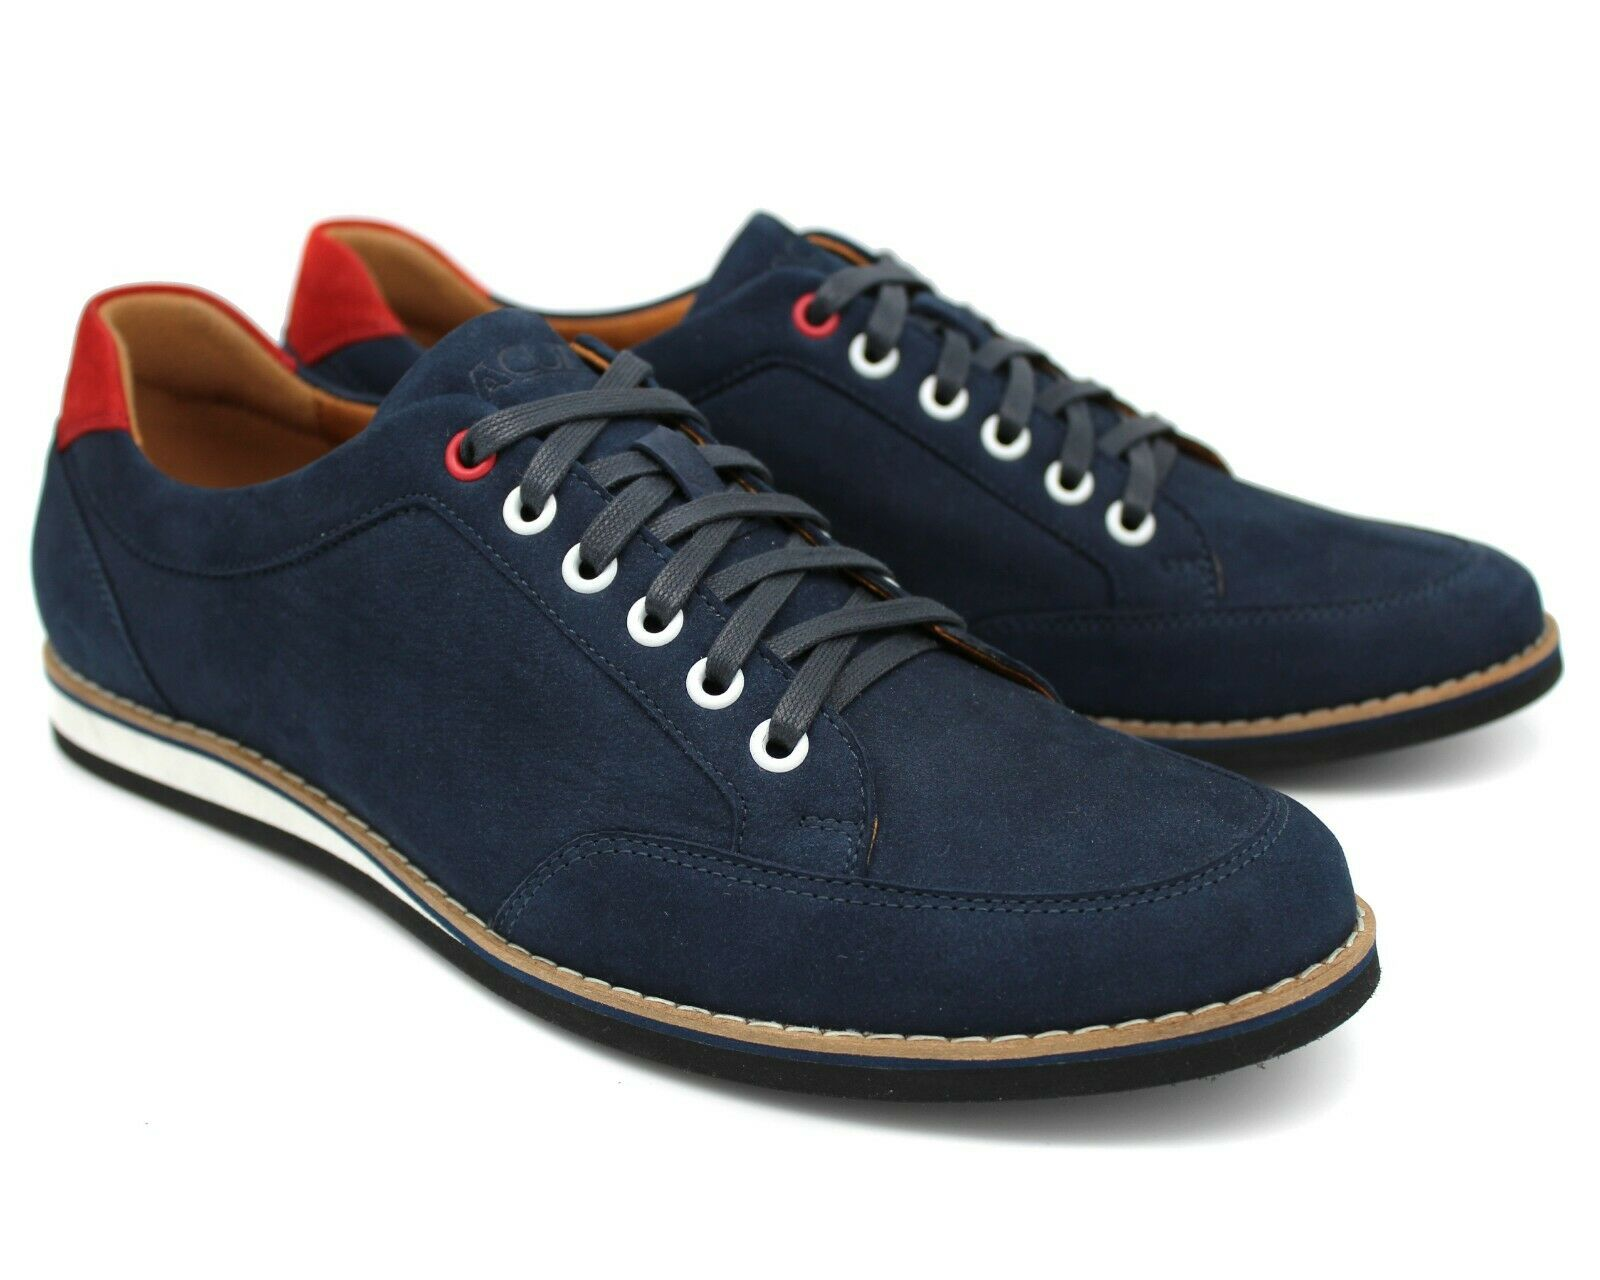 S59 MENS NAVY blueE REAL SUEDE TRAINERS SNEAKERS SPORT ITALIAN SHOES